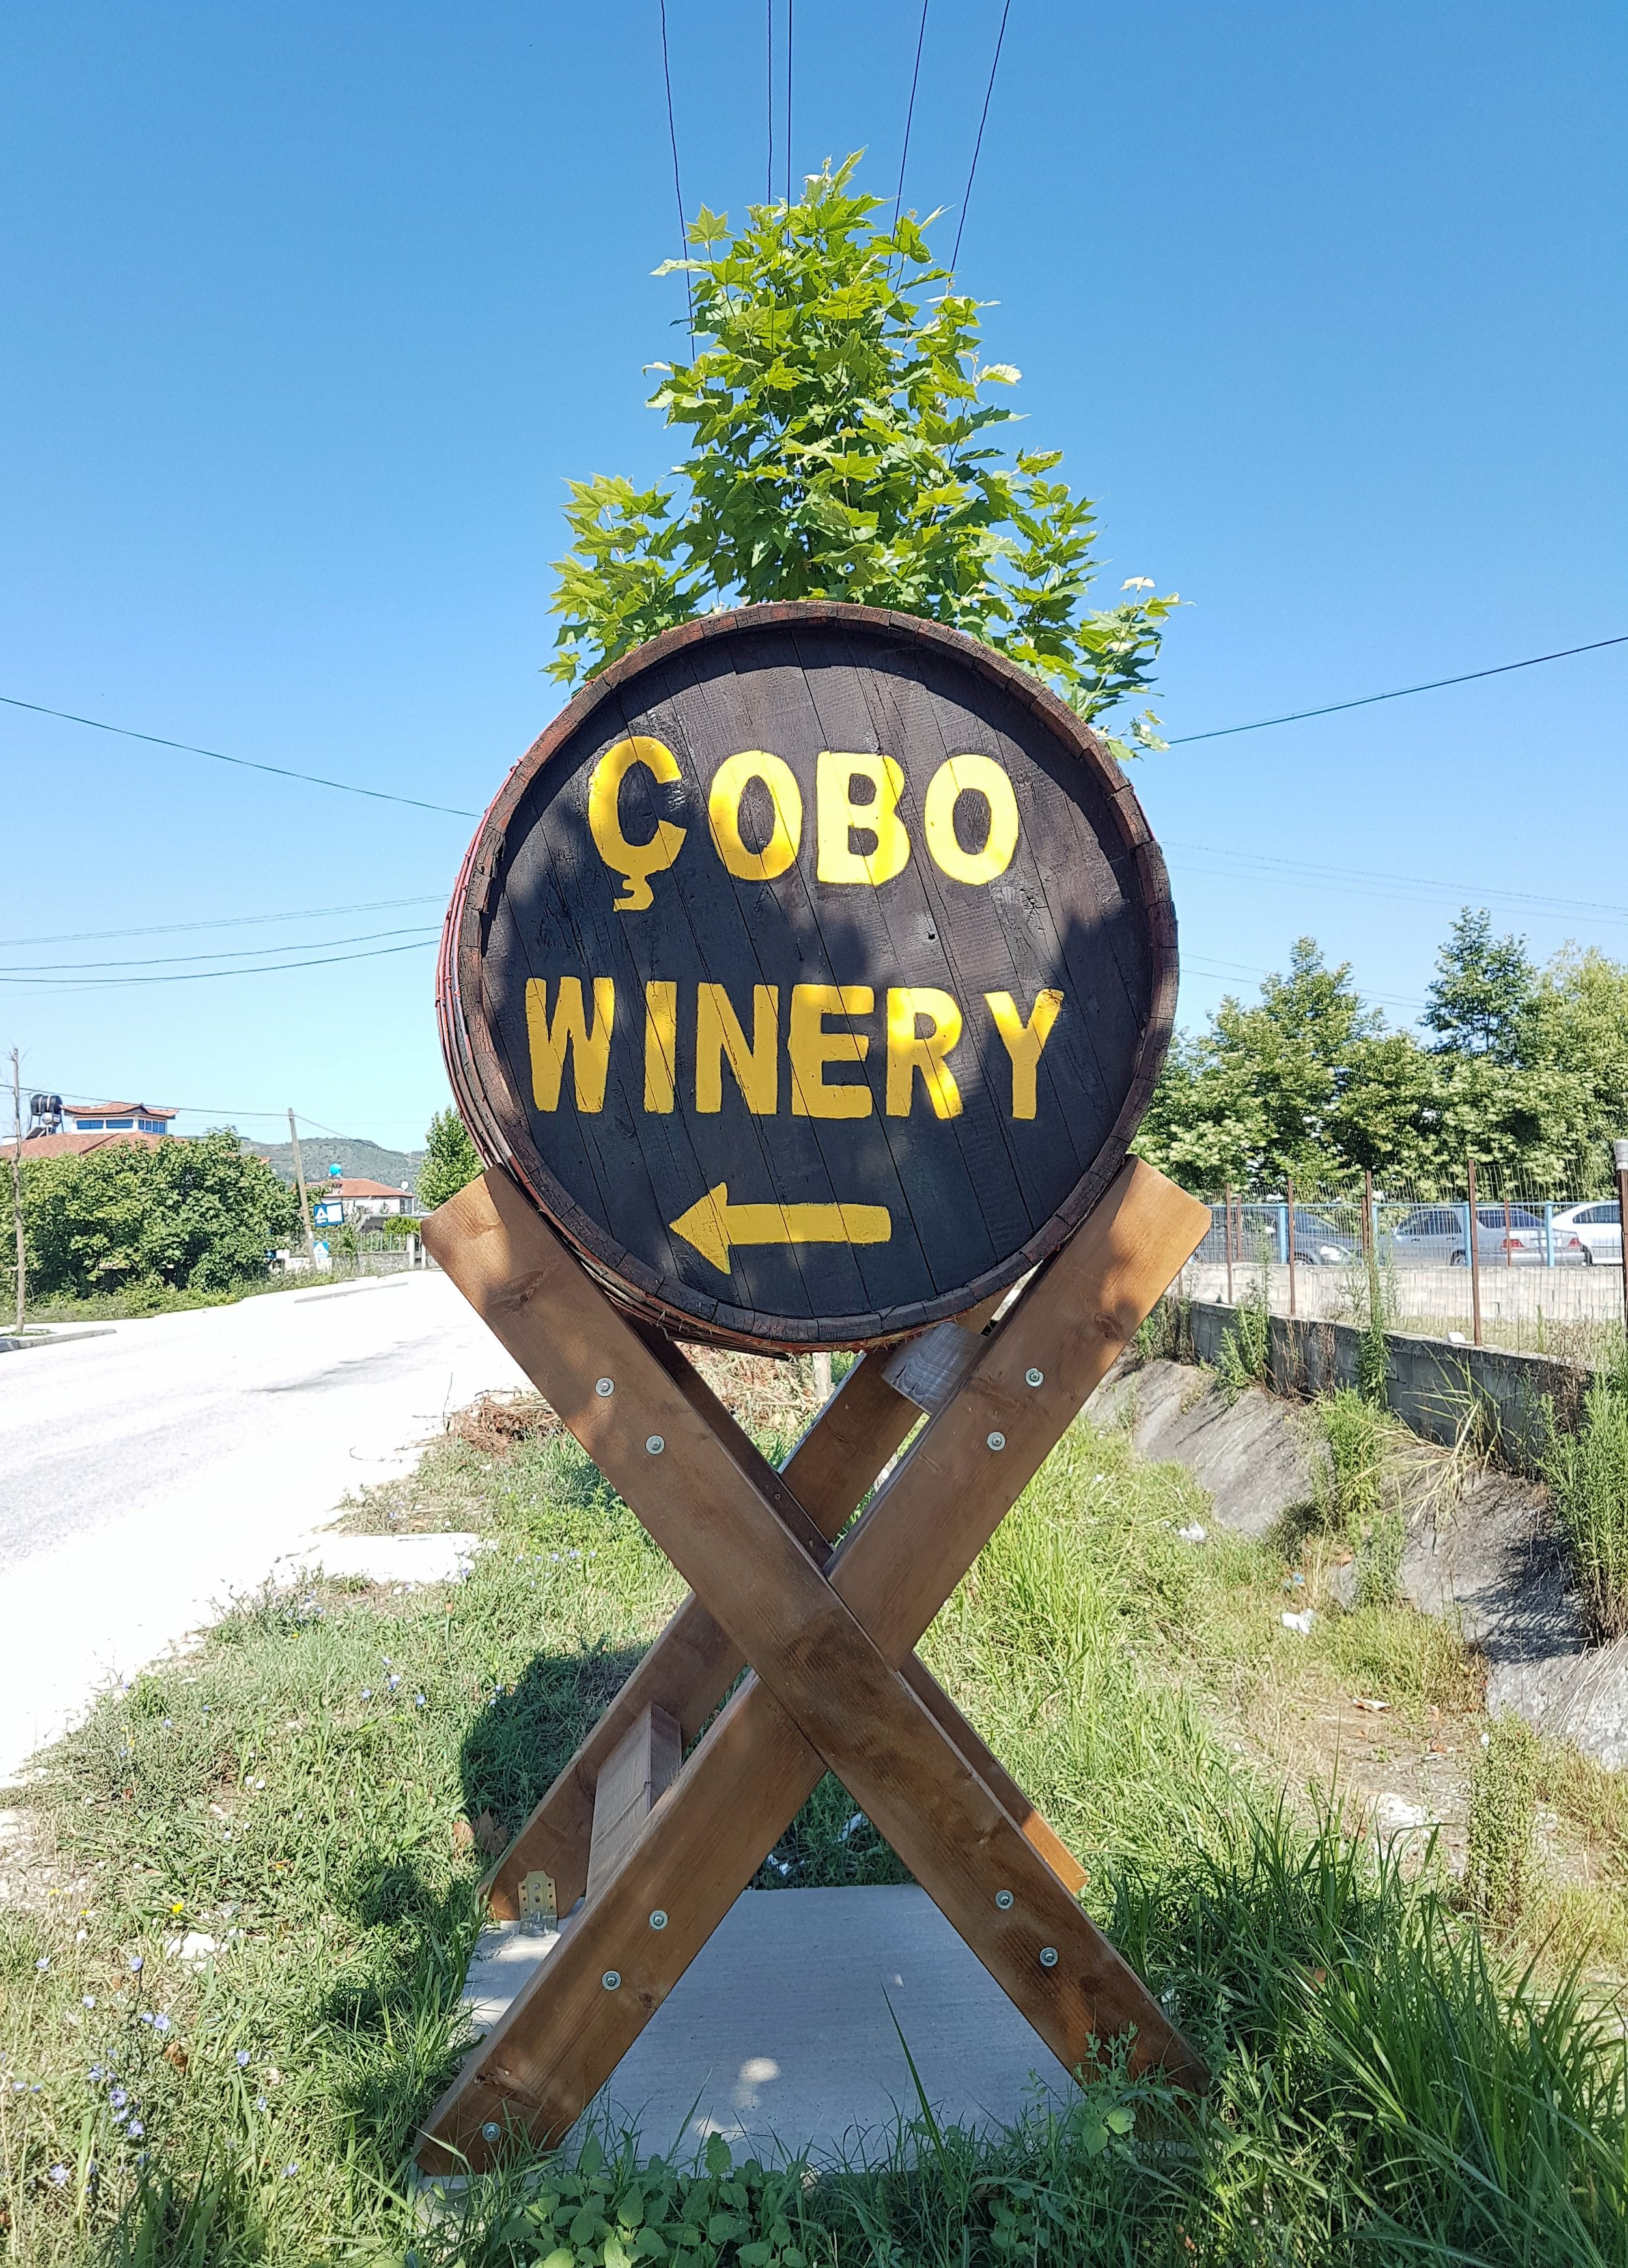 Signage for Cobo Winery.